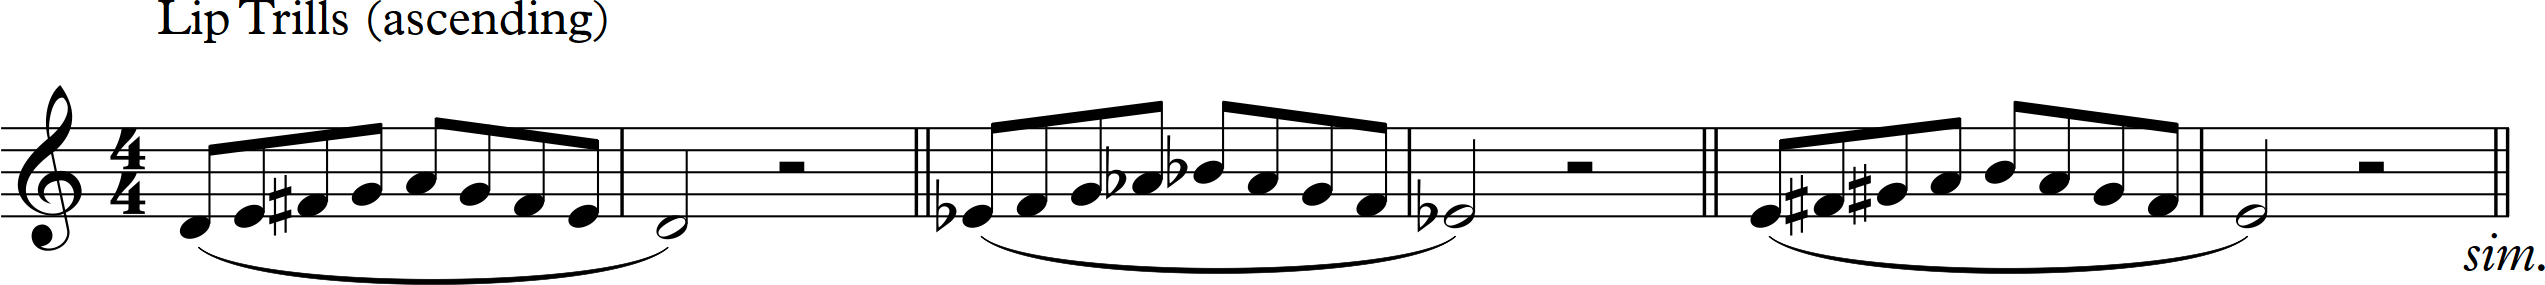 Lip Trills and Vowels (ascending)